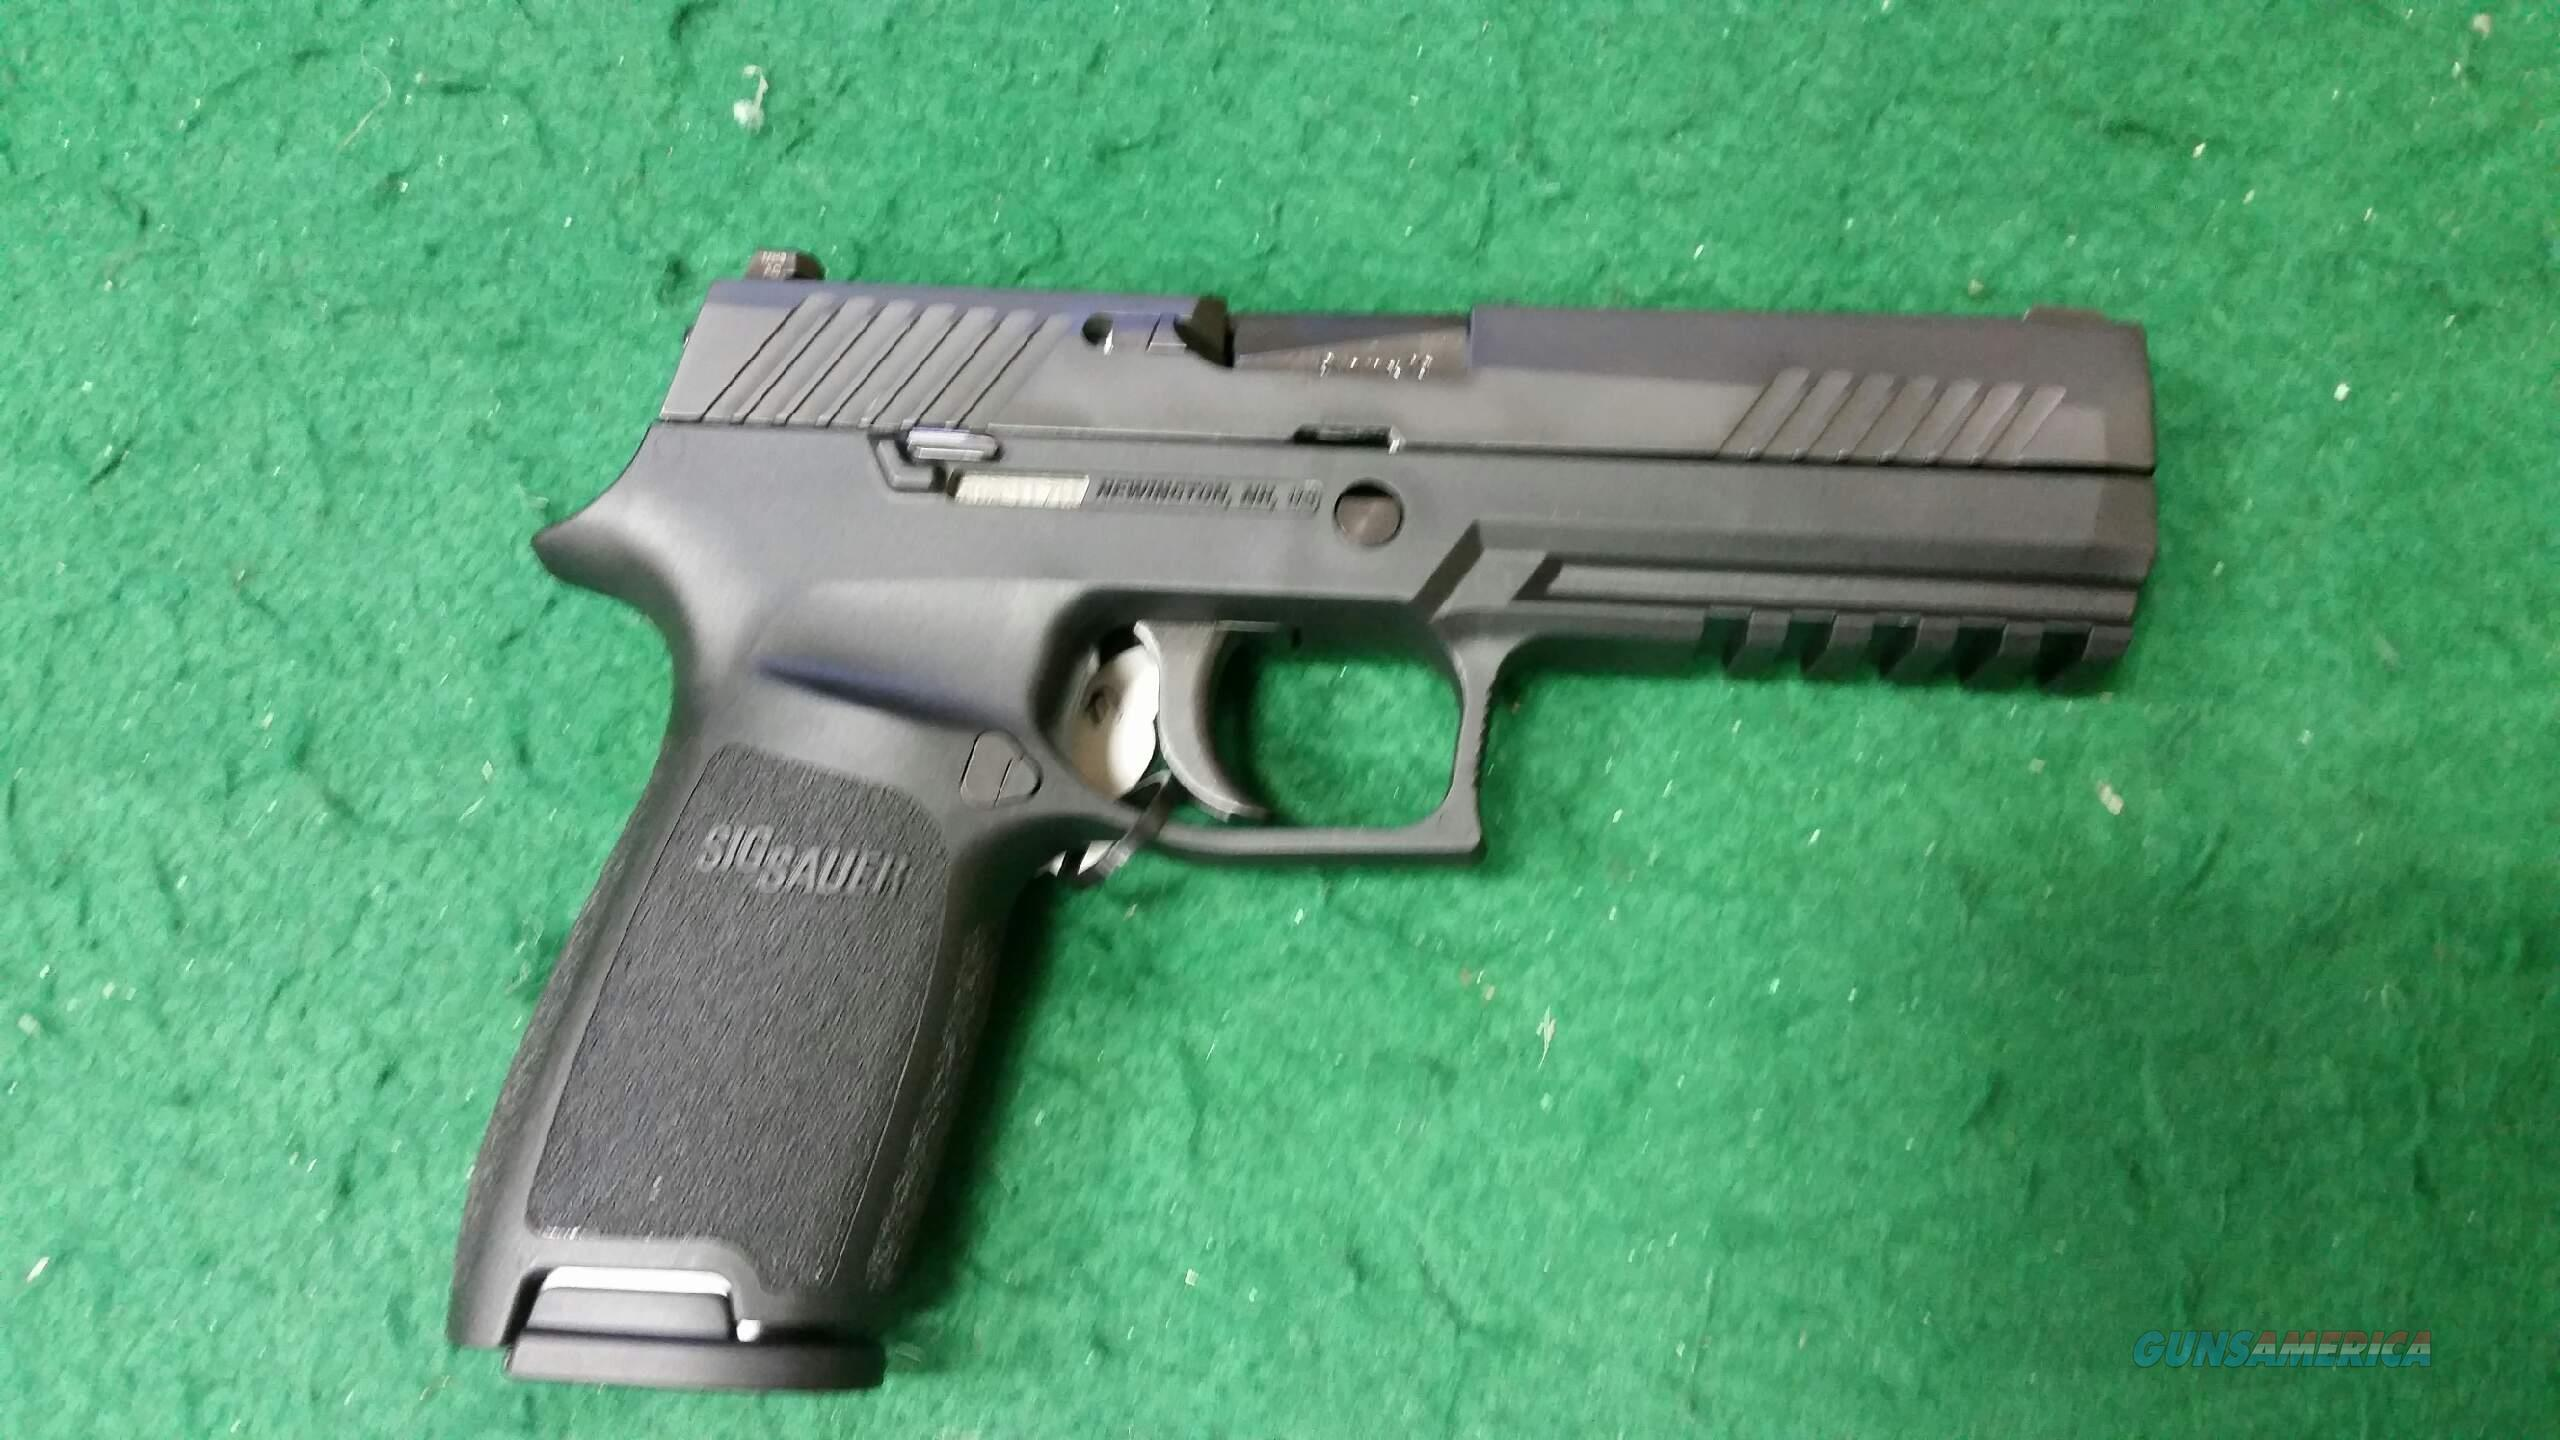 Sig Sauer - P320 - 9mm - Full Size NS  Guns > Pistols > Sig - Sauer/Sigarms Pistols > P320